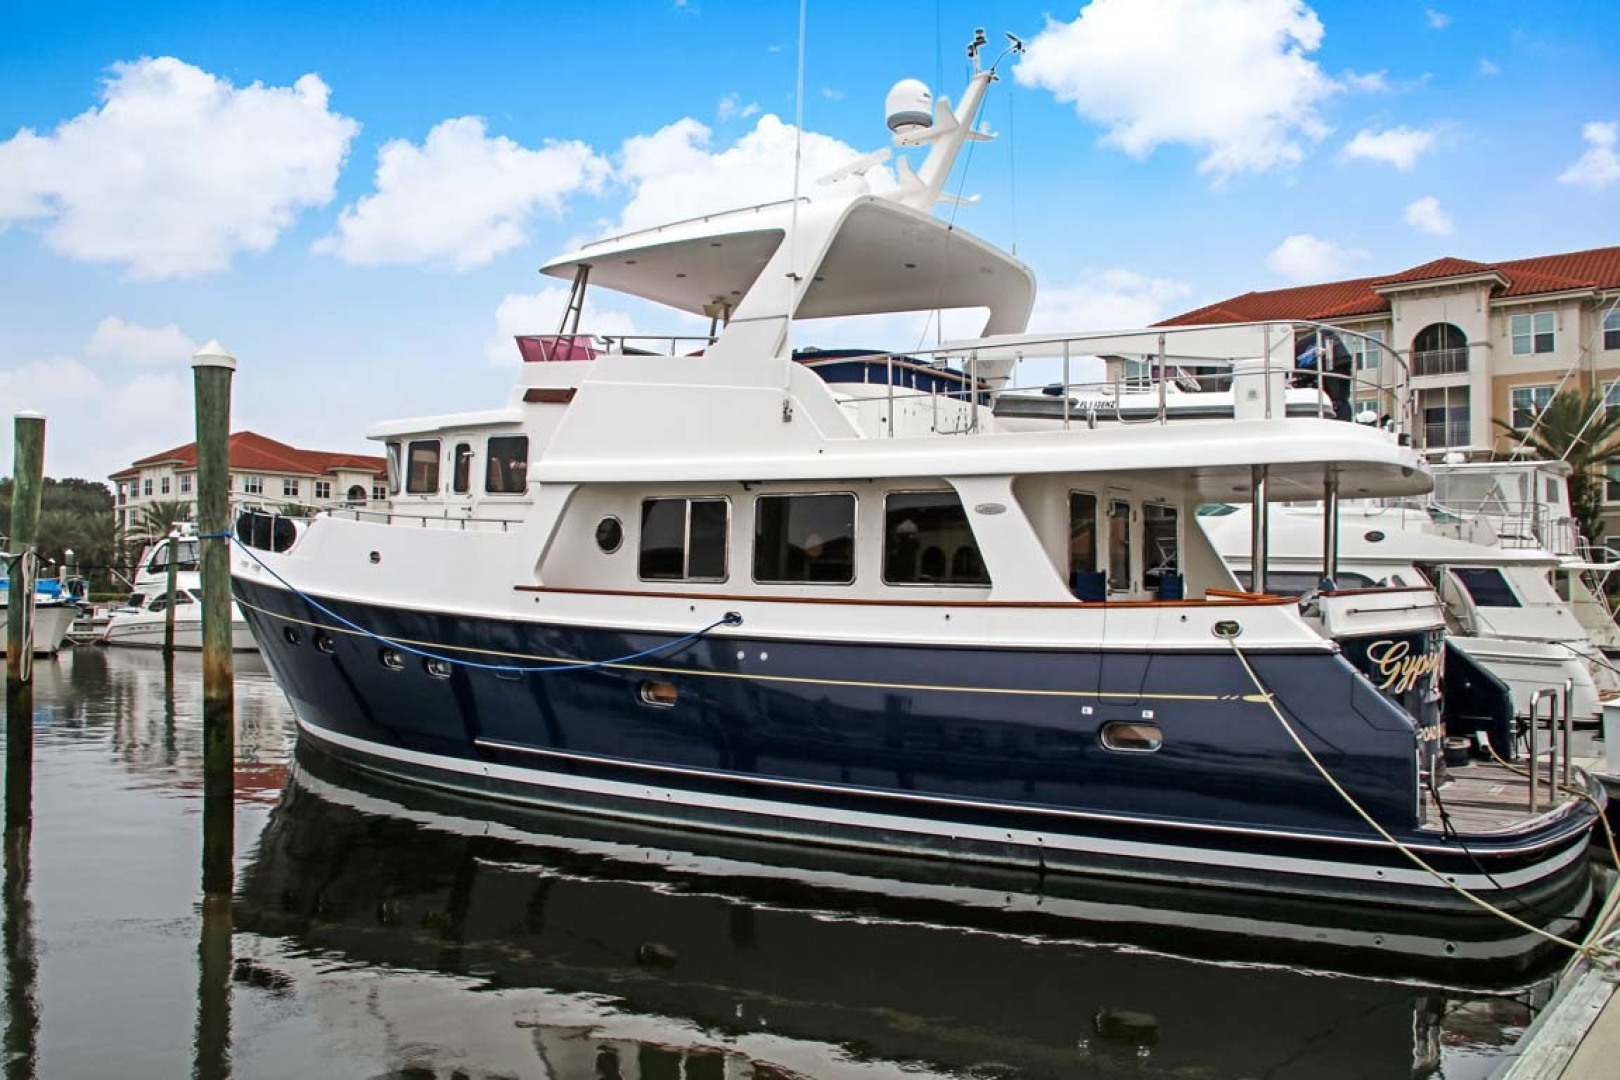 Selene-60 Ocean Trawler 2010-Gypsy Magic Jacksonville-Florida-United States-Port Profile-1346683 | Thumbnail